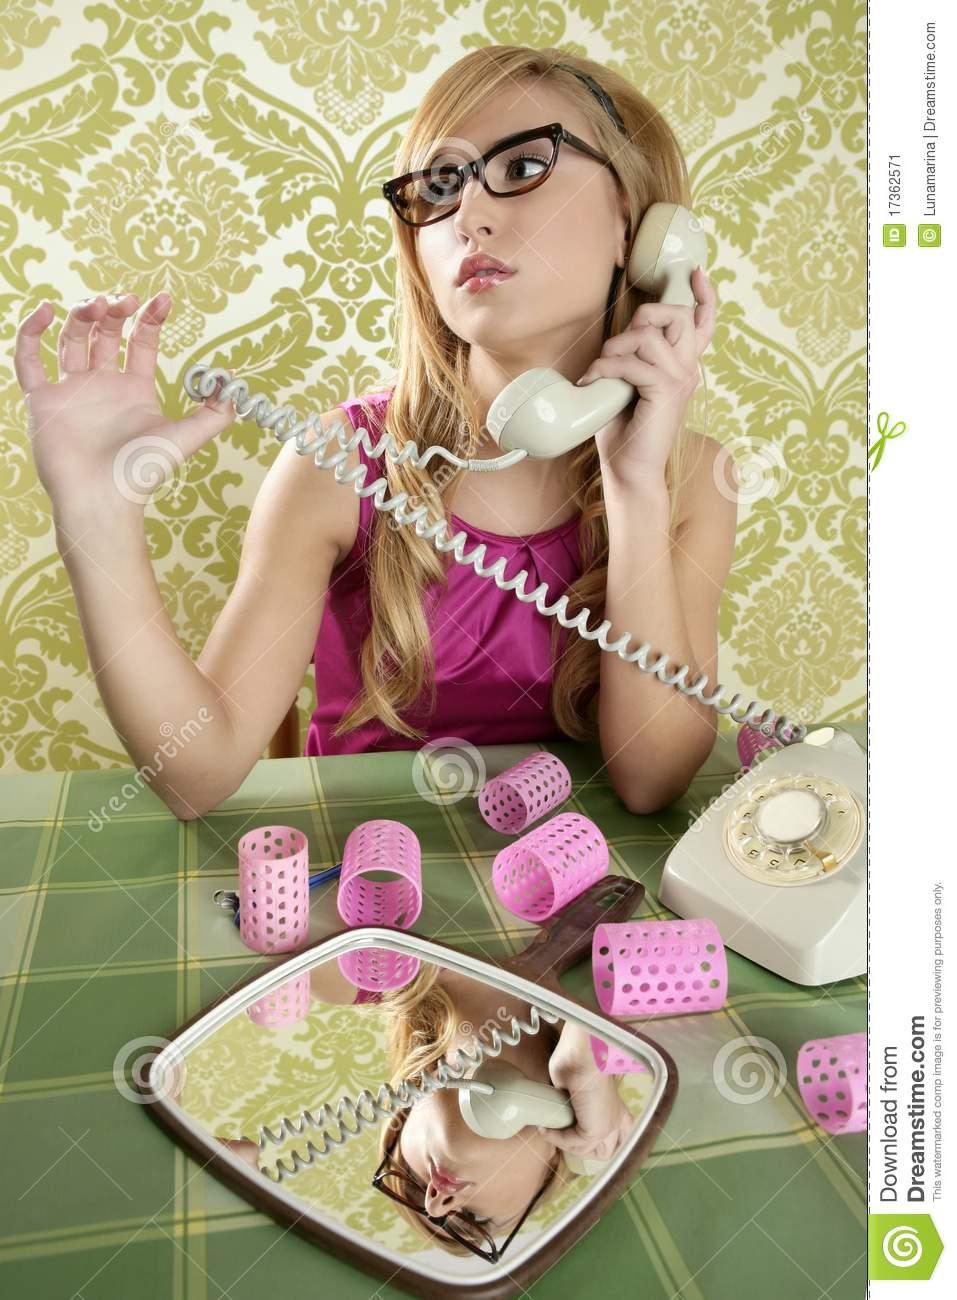 Retro housewife telephone woman vintage wallpaper stock for Classic housewife